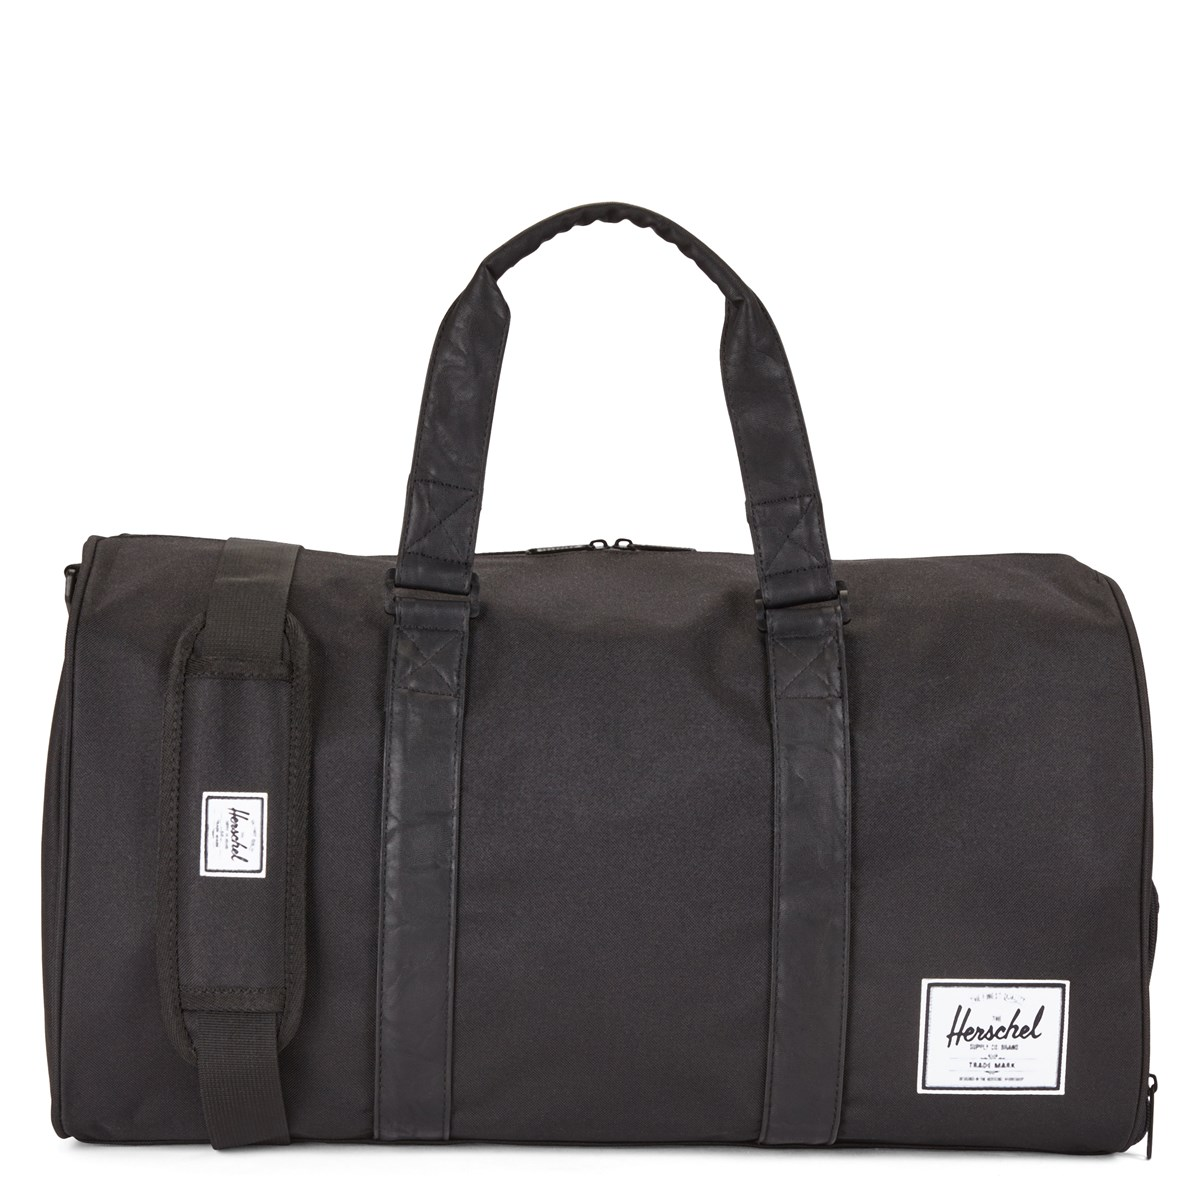 Novel Weekender Duffle Bag in Black Patent and Tan